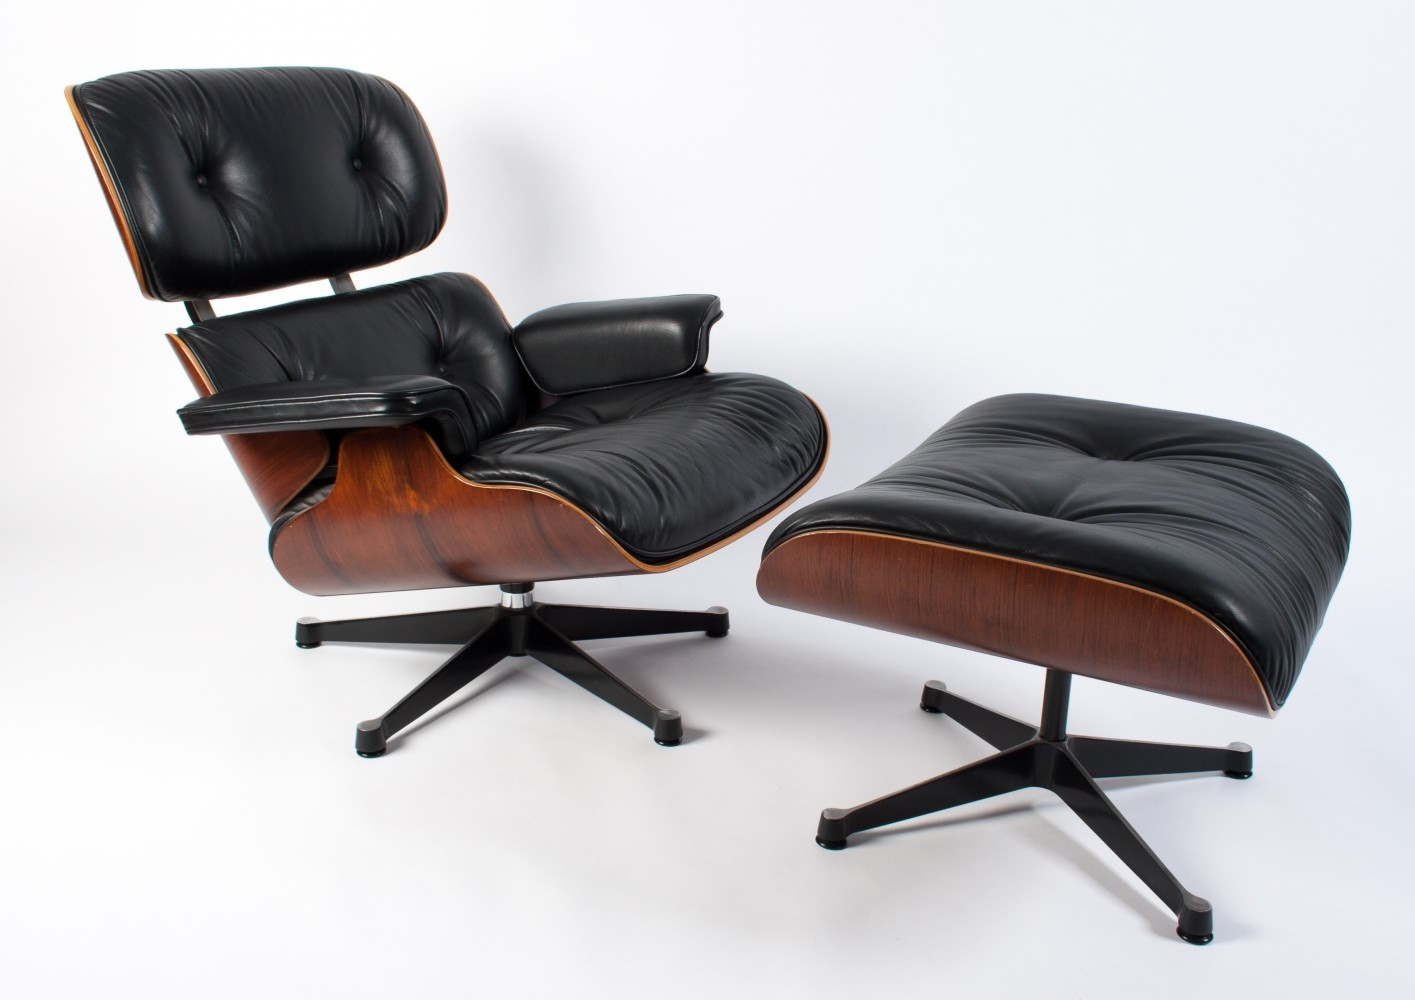 Eames Lounge Chair + Ottoman by Vitra, 1983